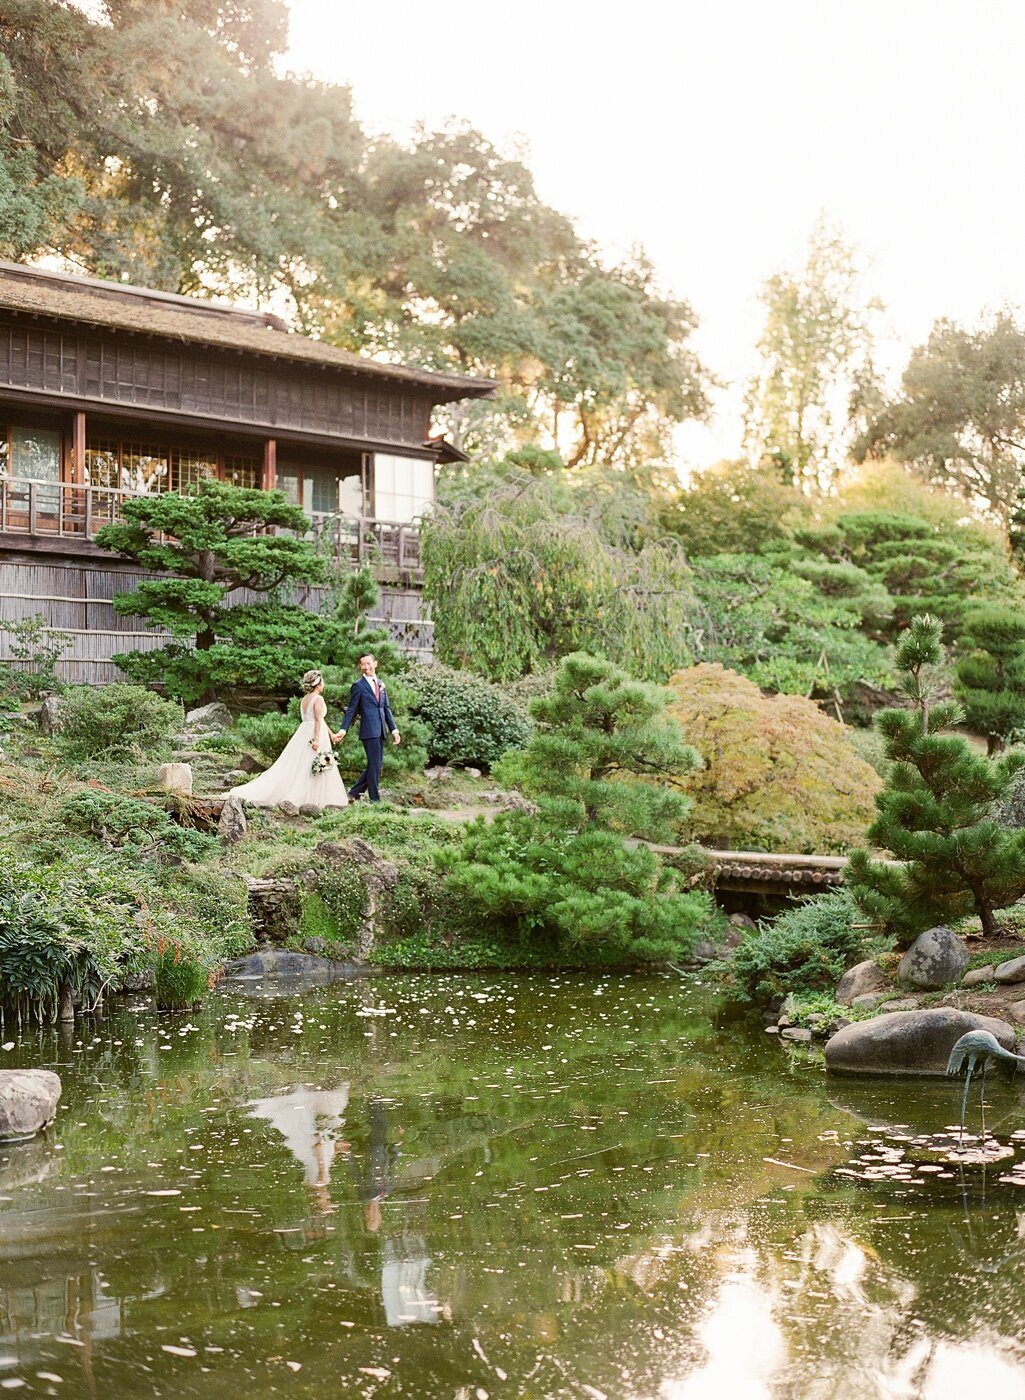 Jessie-Barksdale-Photography_Hakone-Gardens-Saratoga_San-Francisco-Bay-Area-Wedding-Photographer_0040